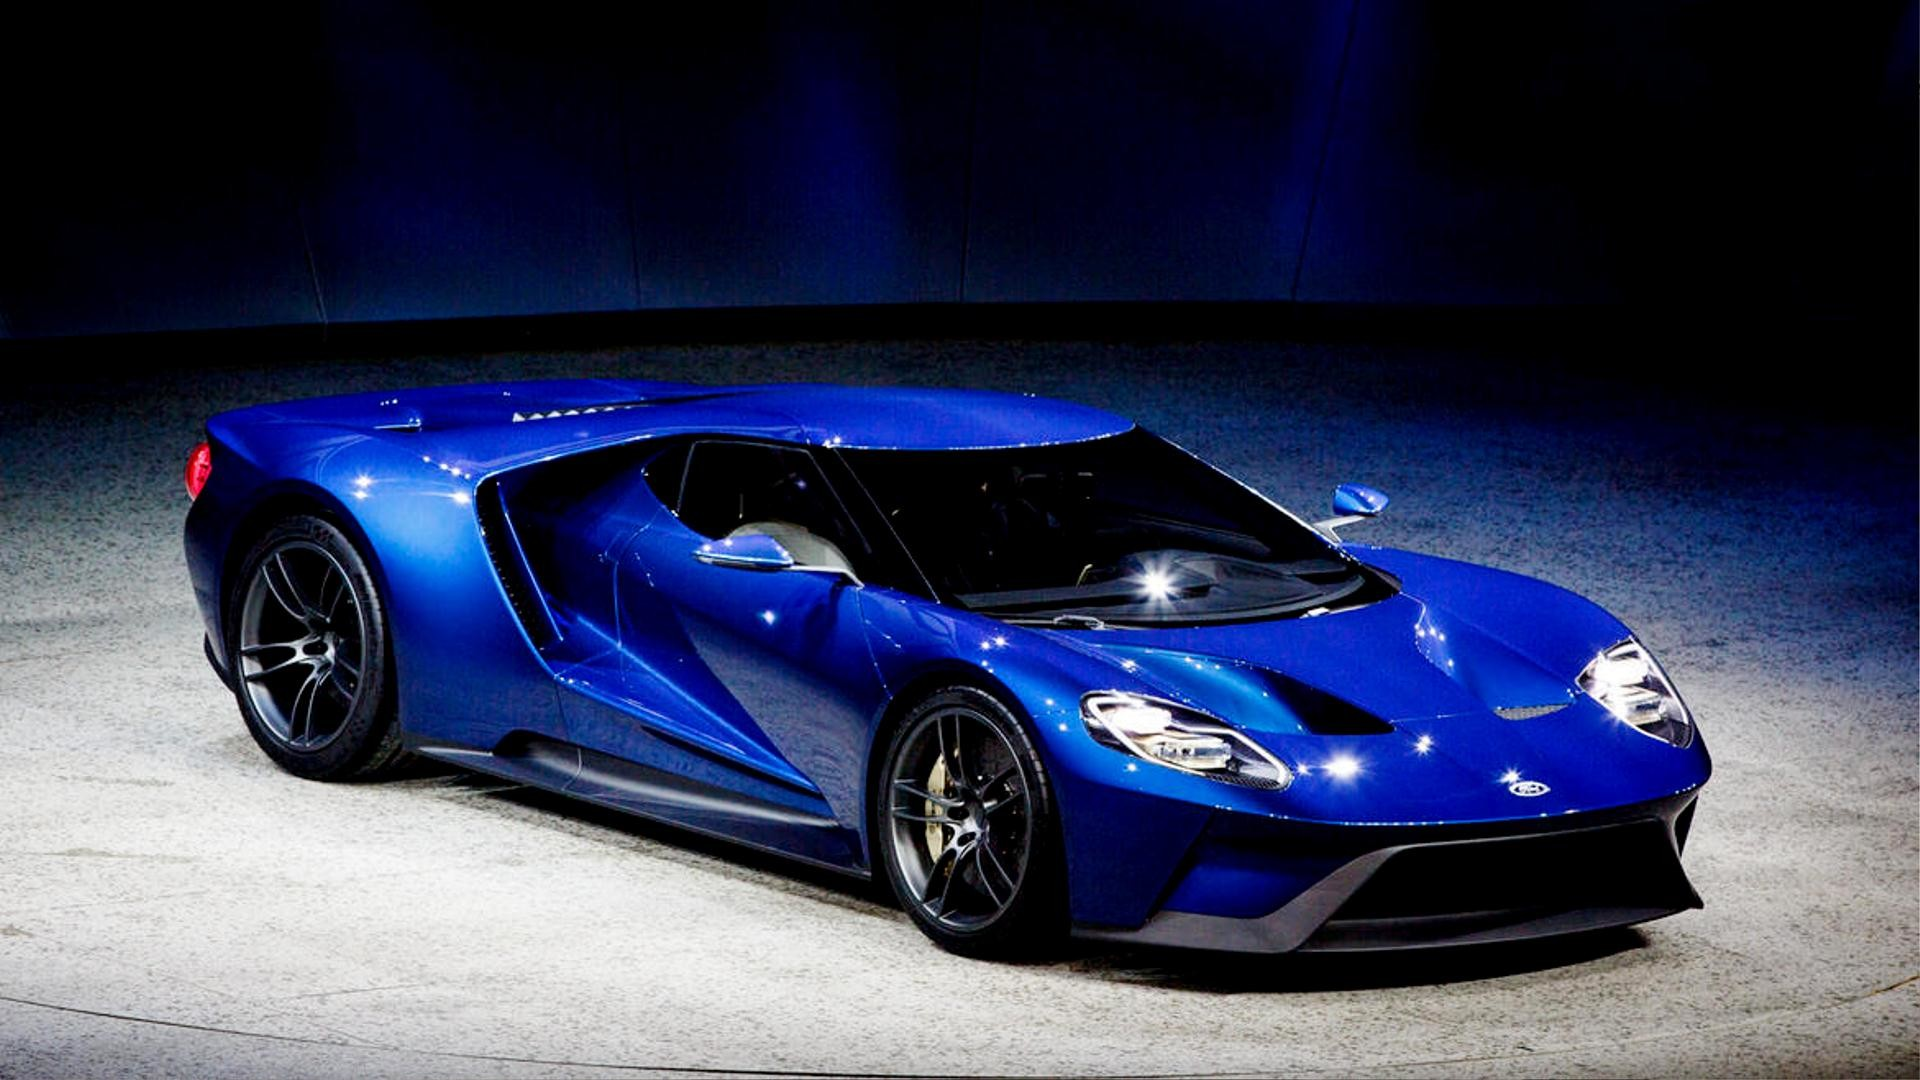 Ford Gt Supercars American Cars 2017 4k Uhd Widescreen: Sports Cars 2018 Wallpaper HD ·① WallpaperTag